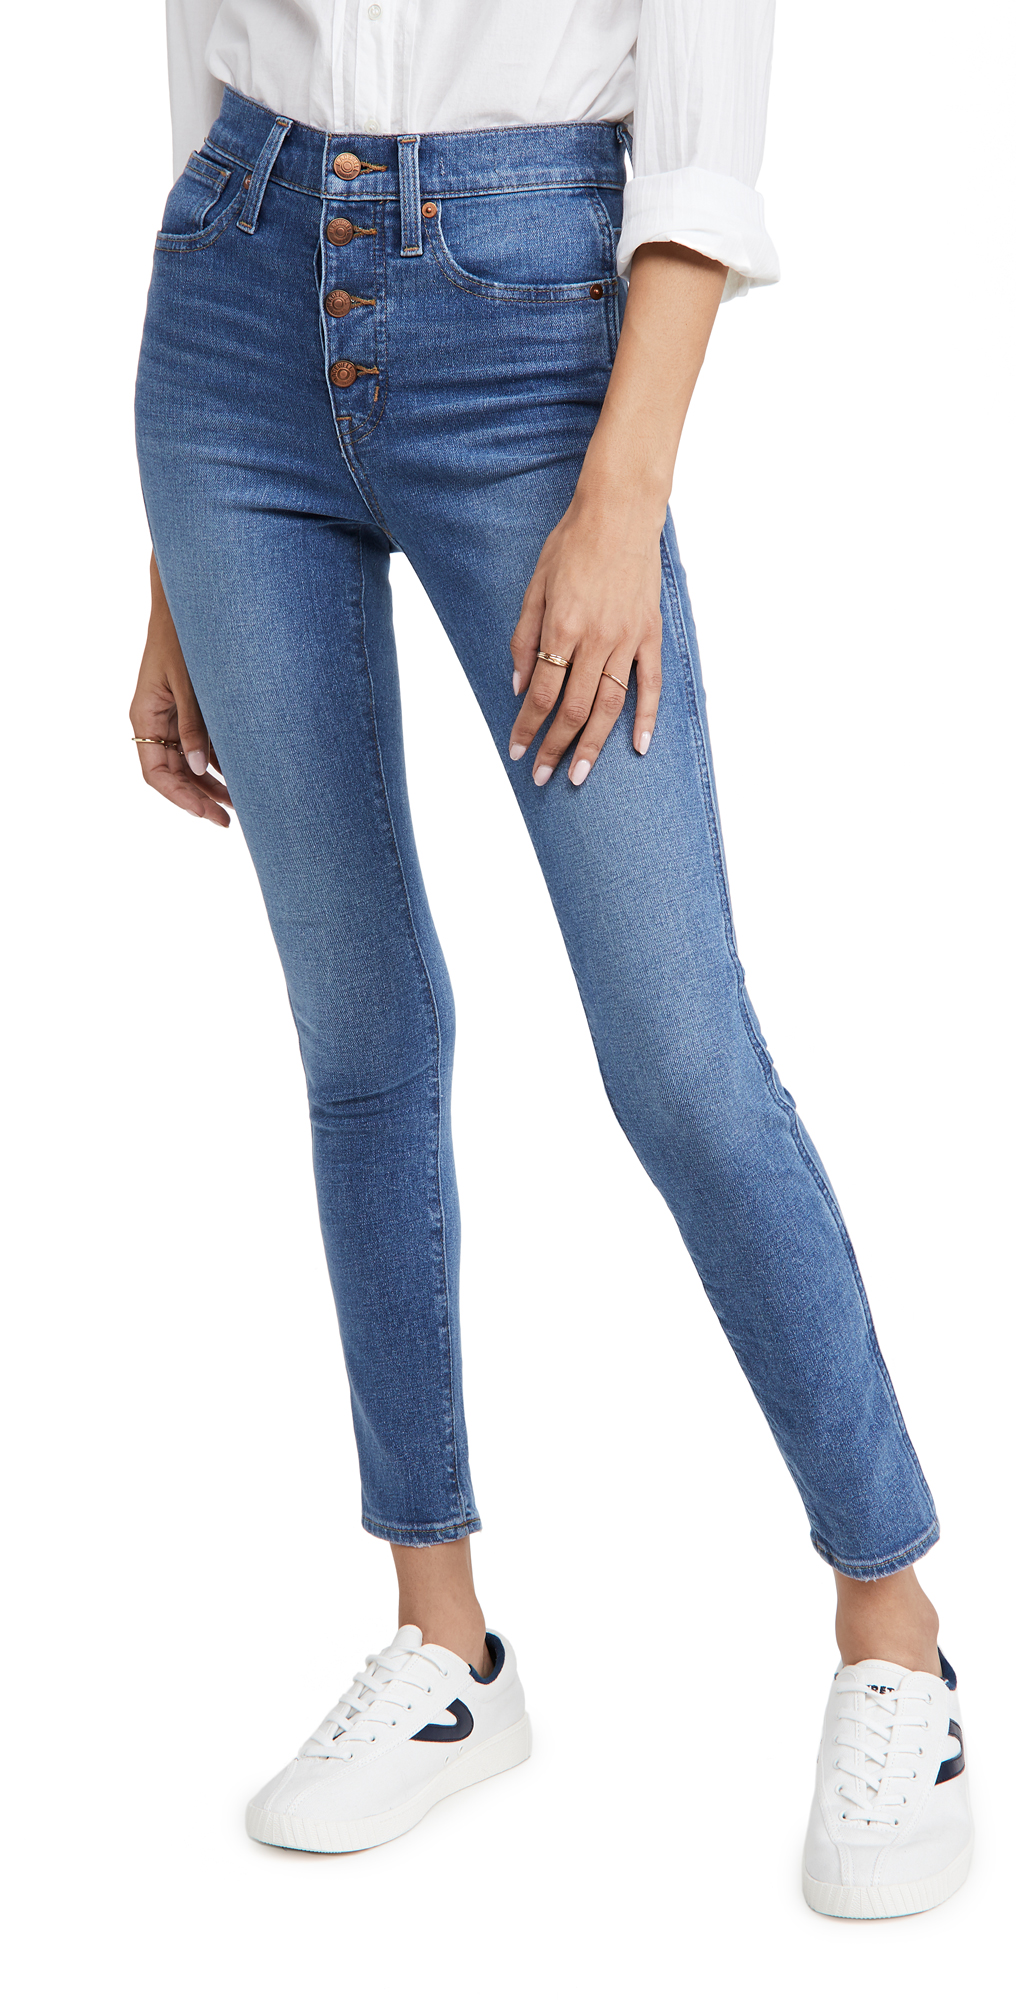 "Madewell 10"" High Rise Skinny Button Front Jeans"